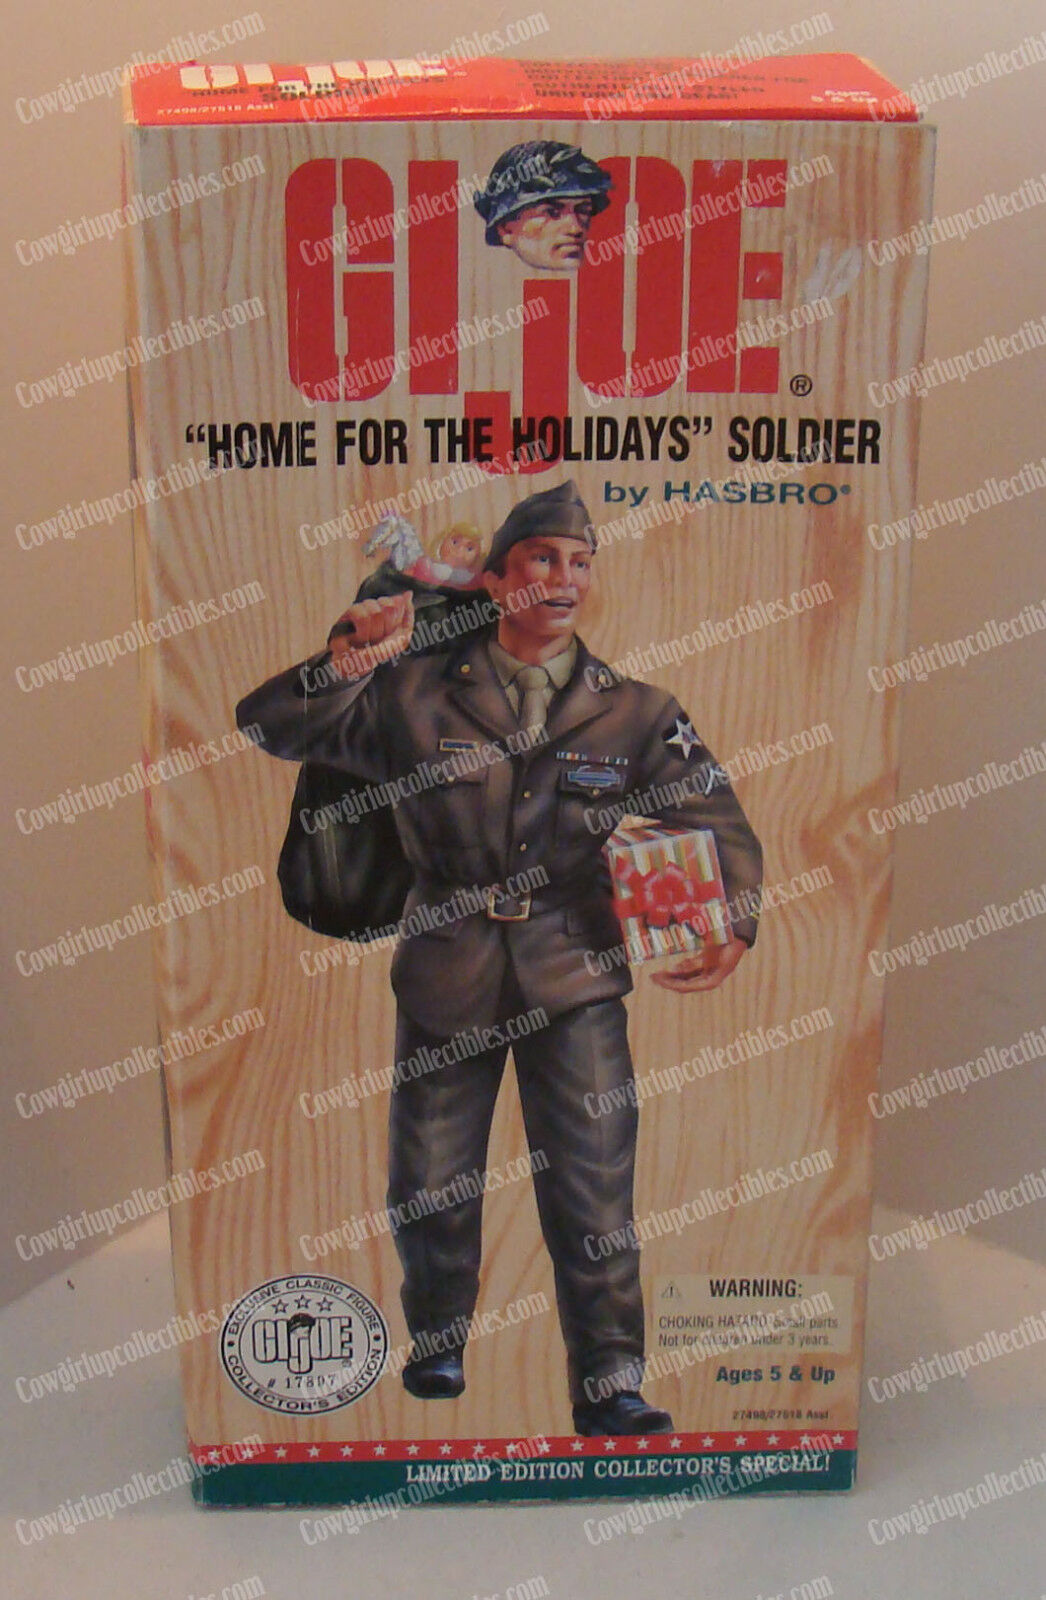 G.I. Joe Home for the Holidays (by Hasbro, 27498 27518) Soldier, 1996 (12 )